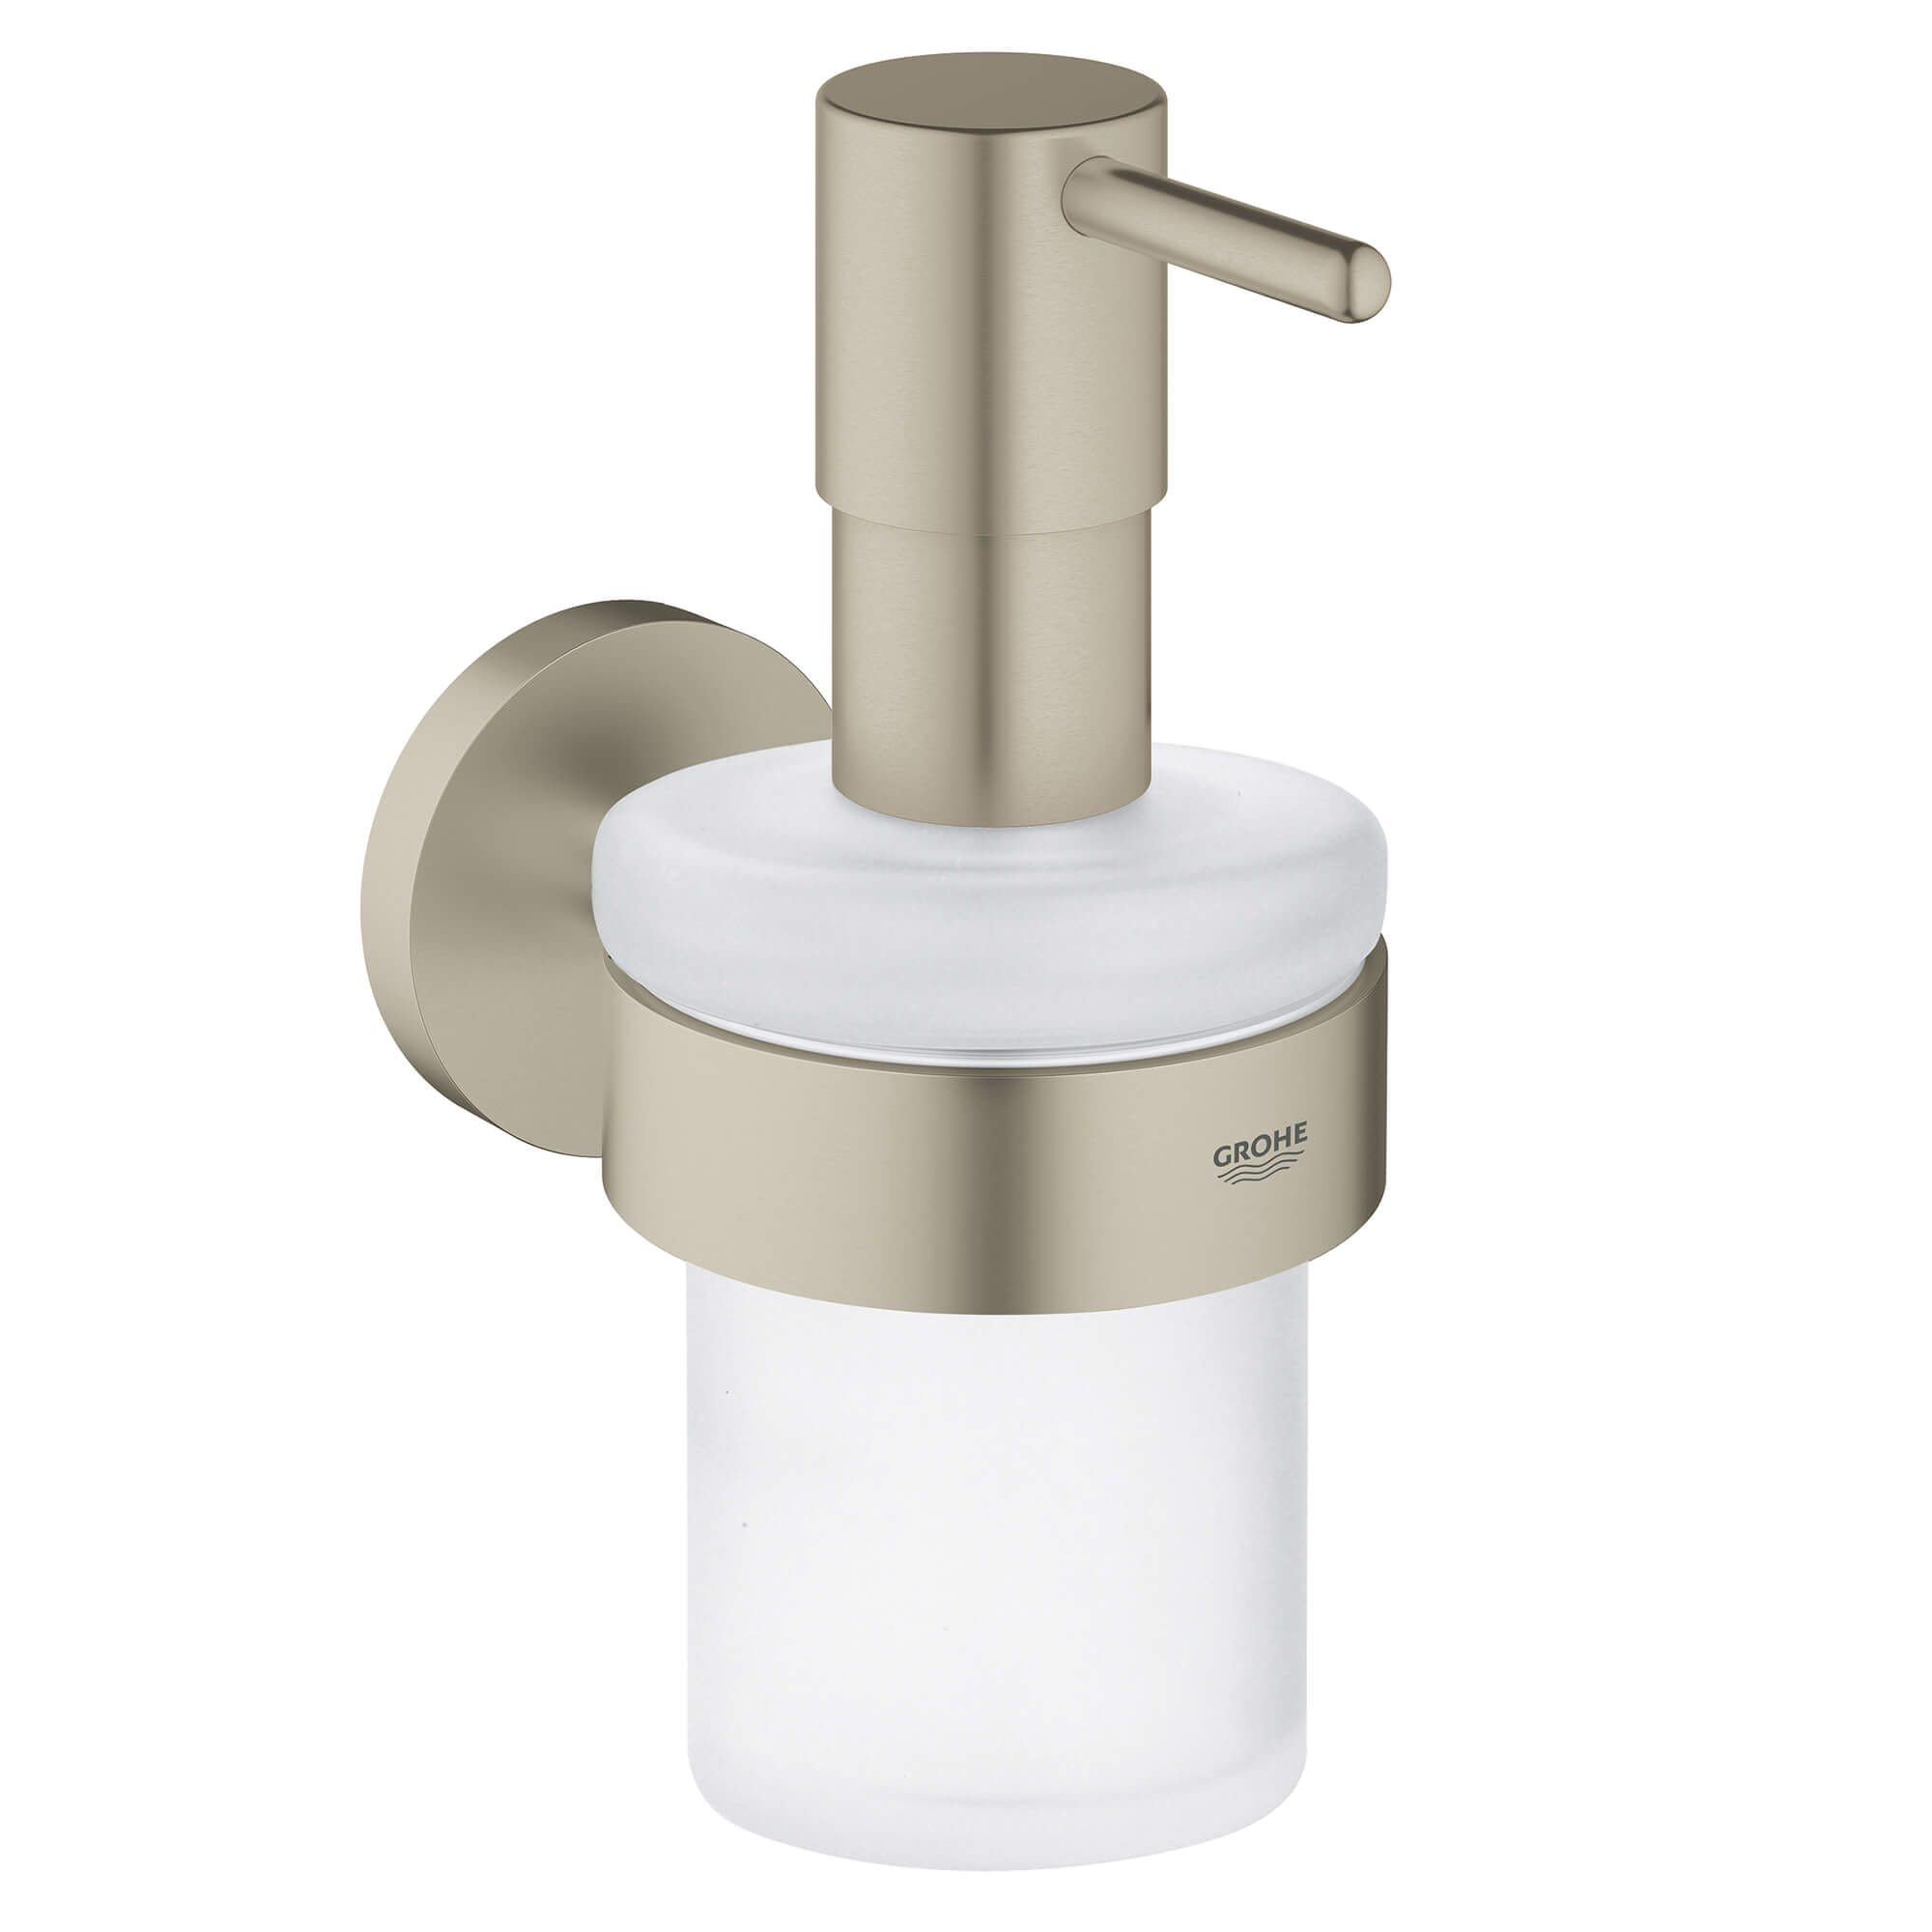 Essentials Distributeur à savon avec support GROHE BRUSHED NICKEL